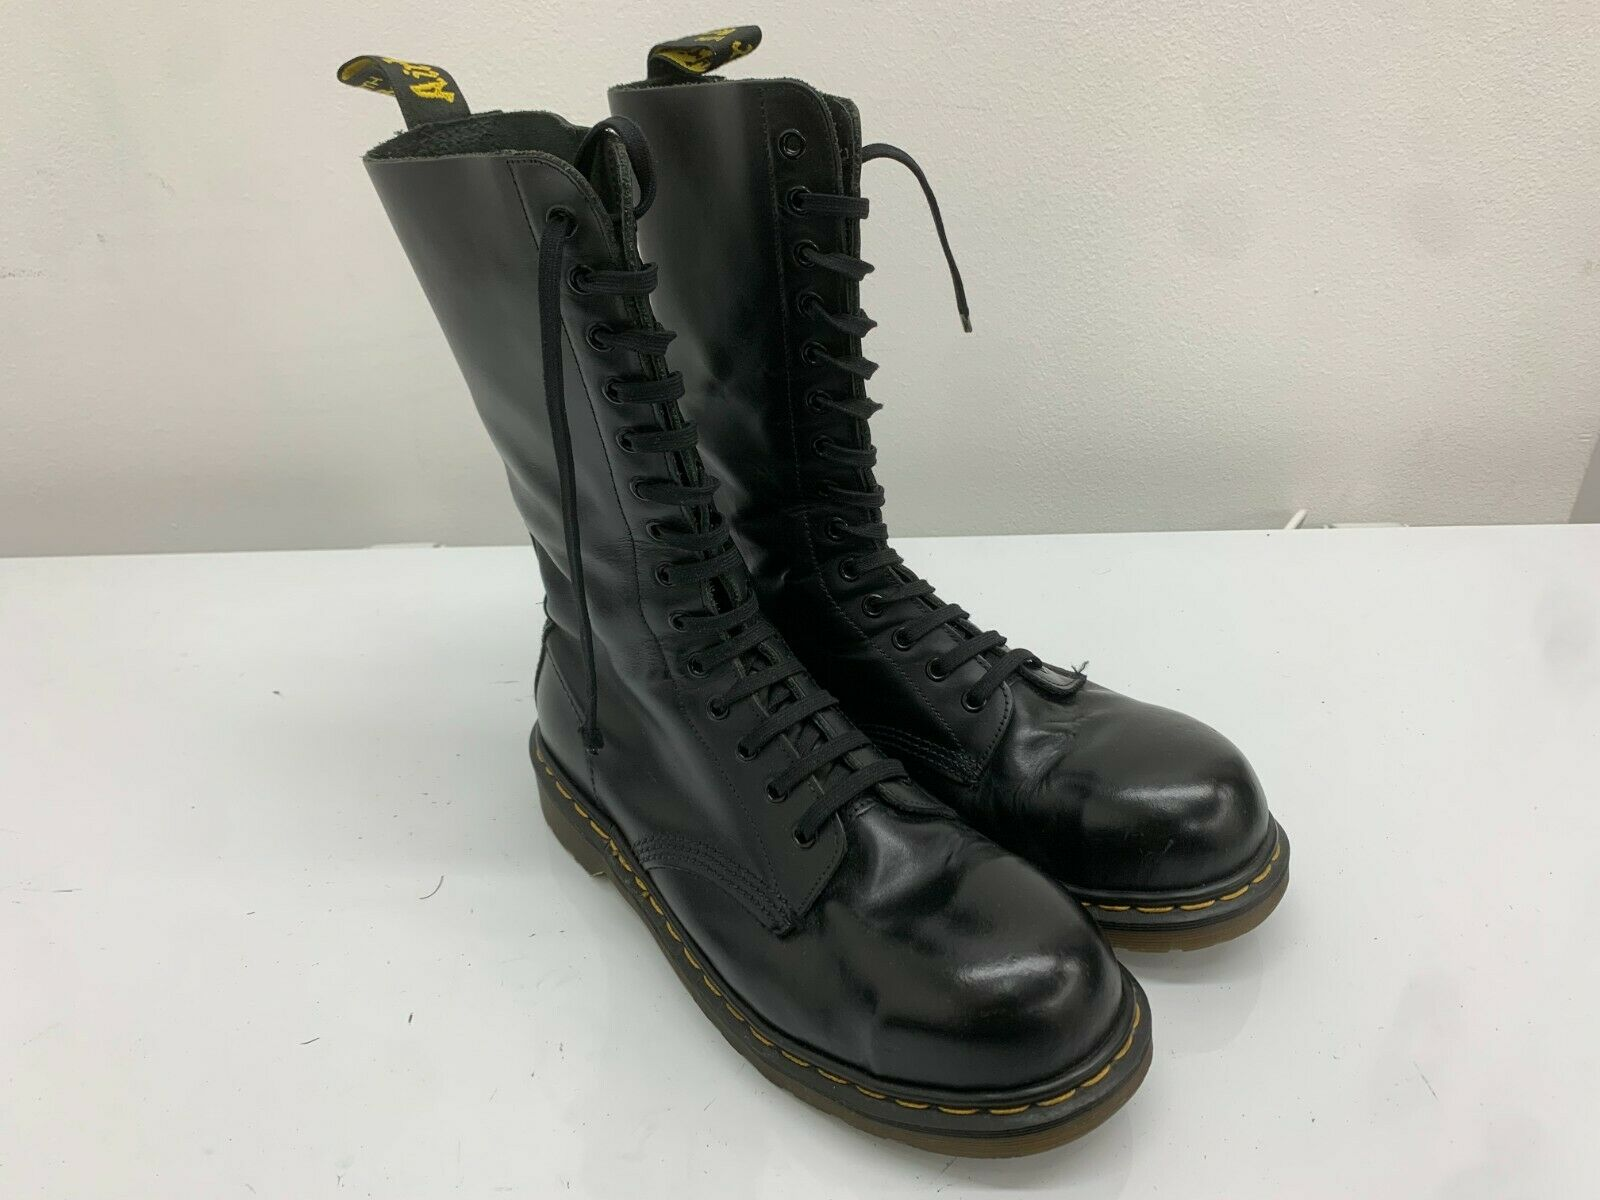 Dr Martens Boots 14 Eyelets Black Leather, Size 8UK, Made In England. Steel Toe.